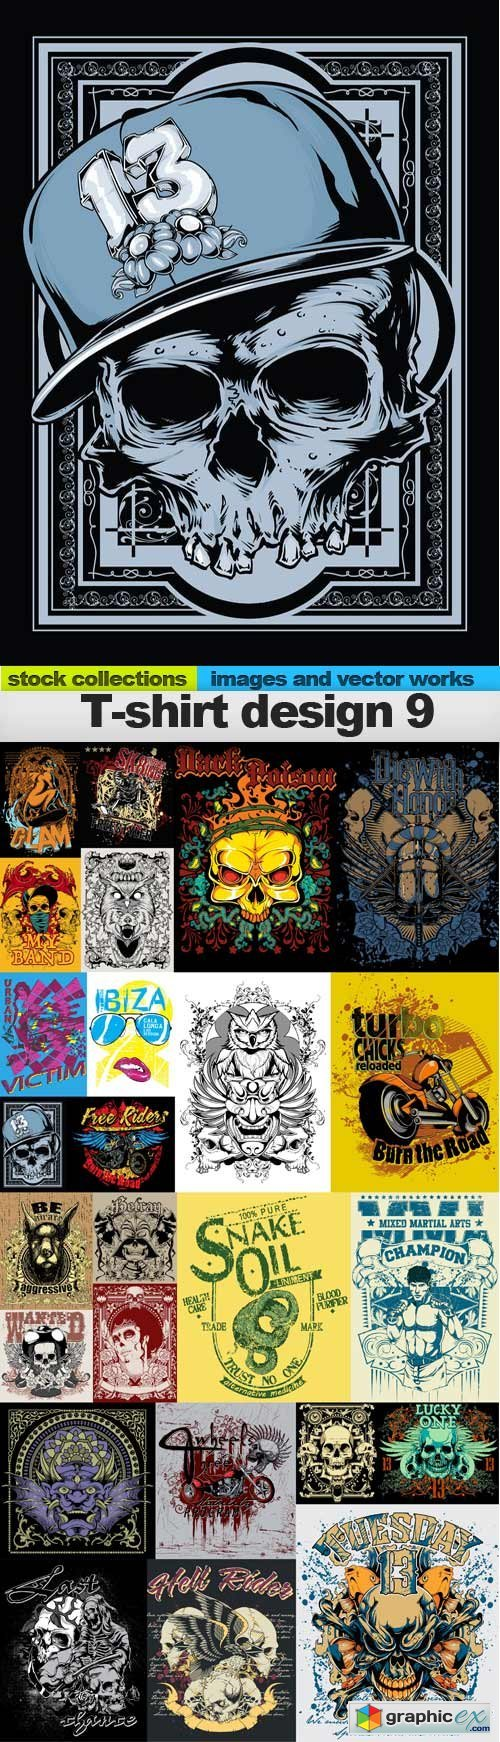 T-shirt design 9, 25 EPS